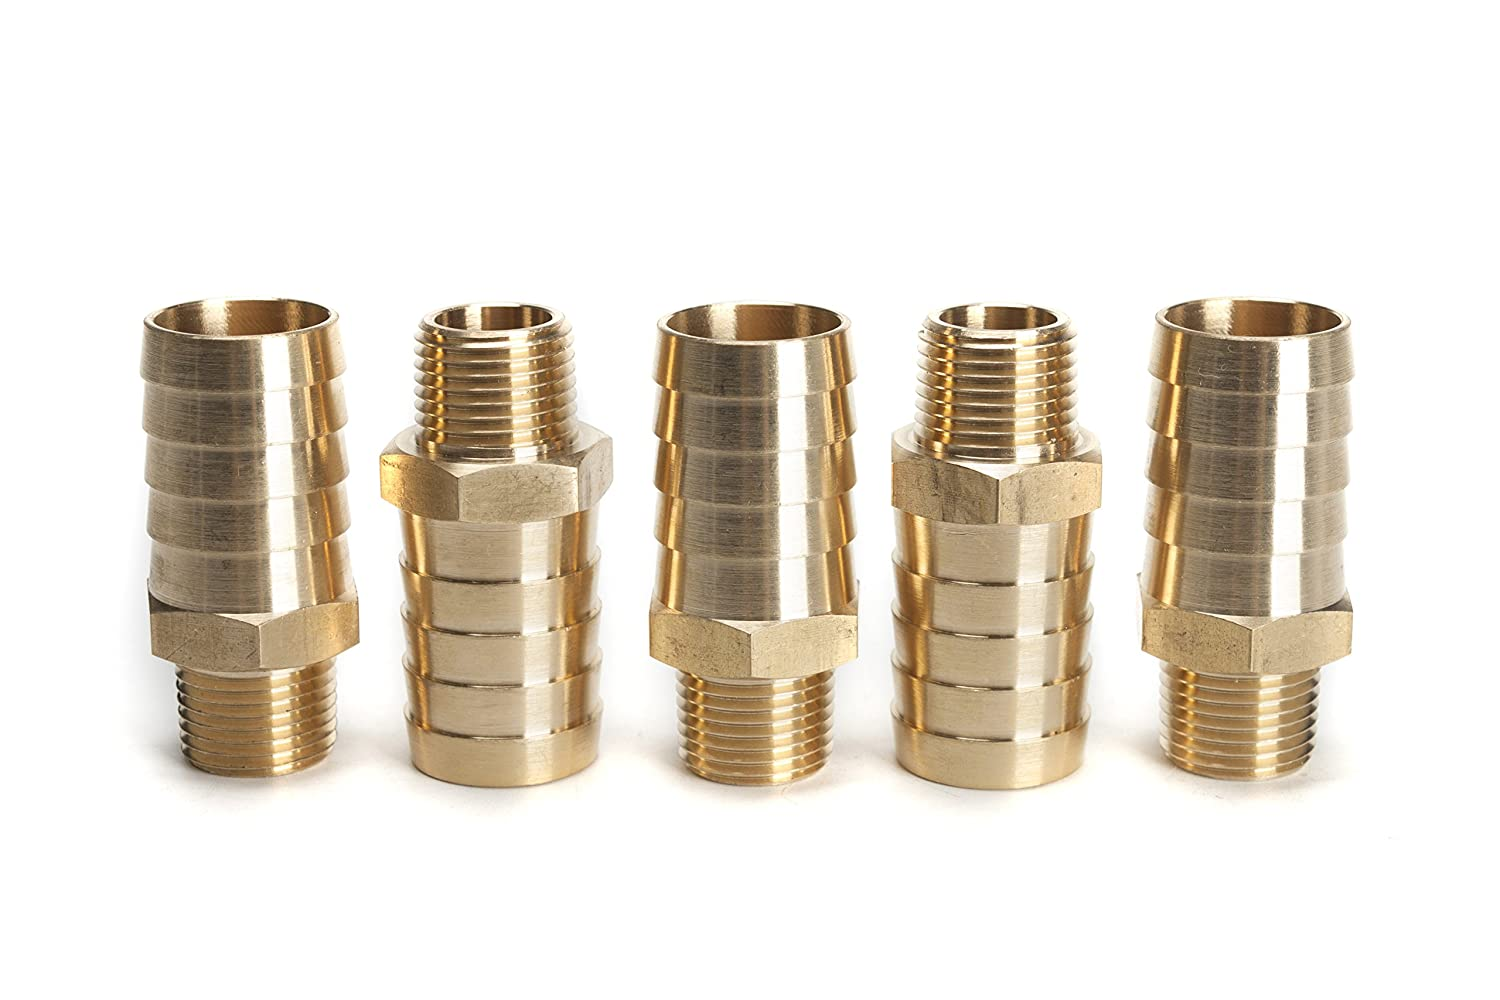 Pack of 5 LTWFITTING Brass Fitting Connector 1-Inch Hose Barb x 1//2-Inch NPT Male Fuel Gas Water